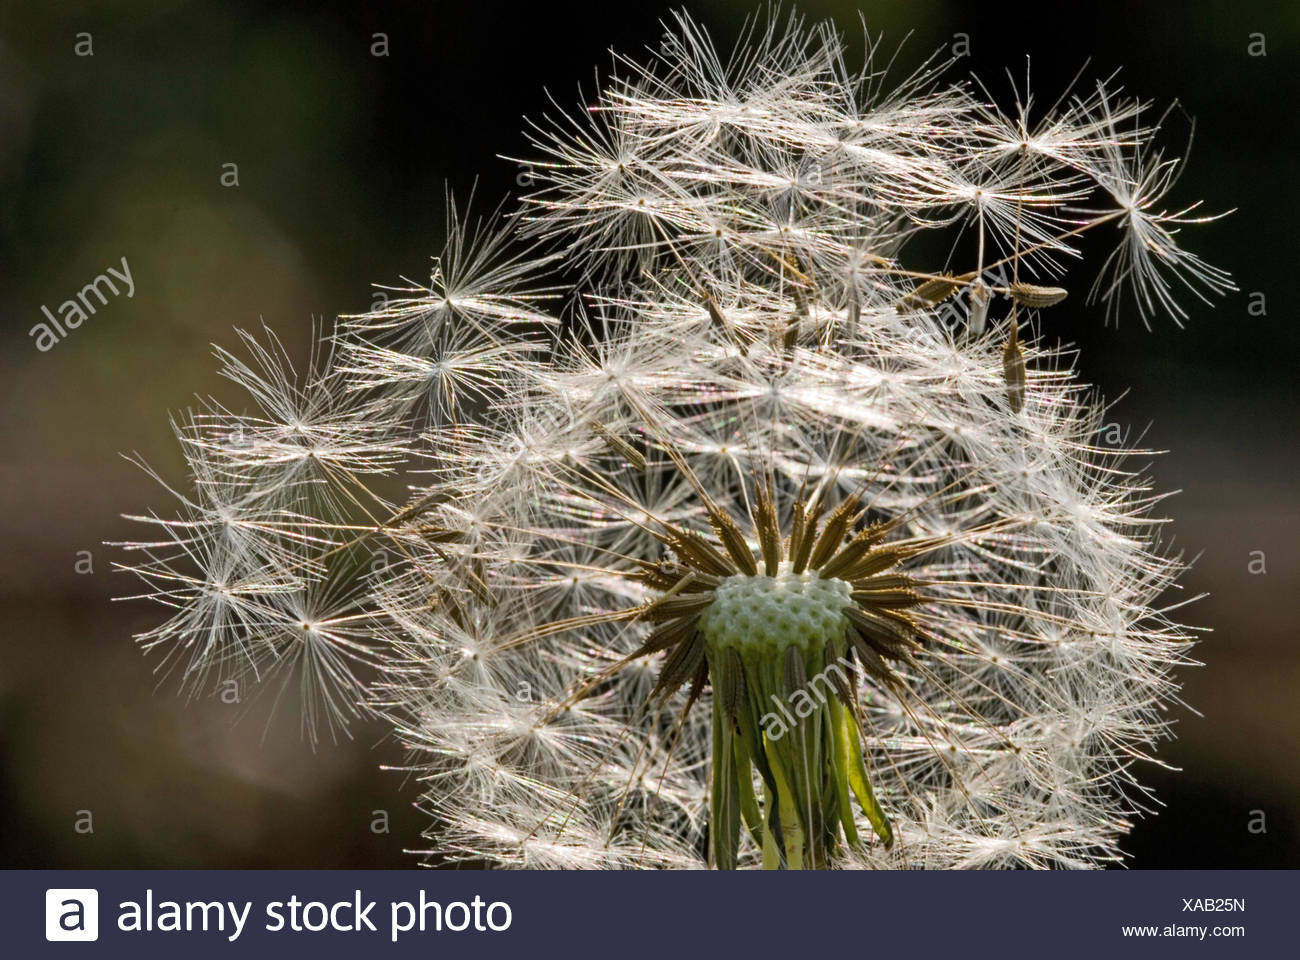 seed of Dandelion flower - Stock Image